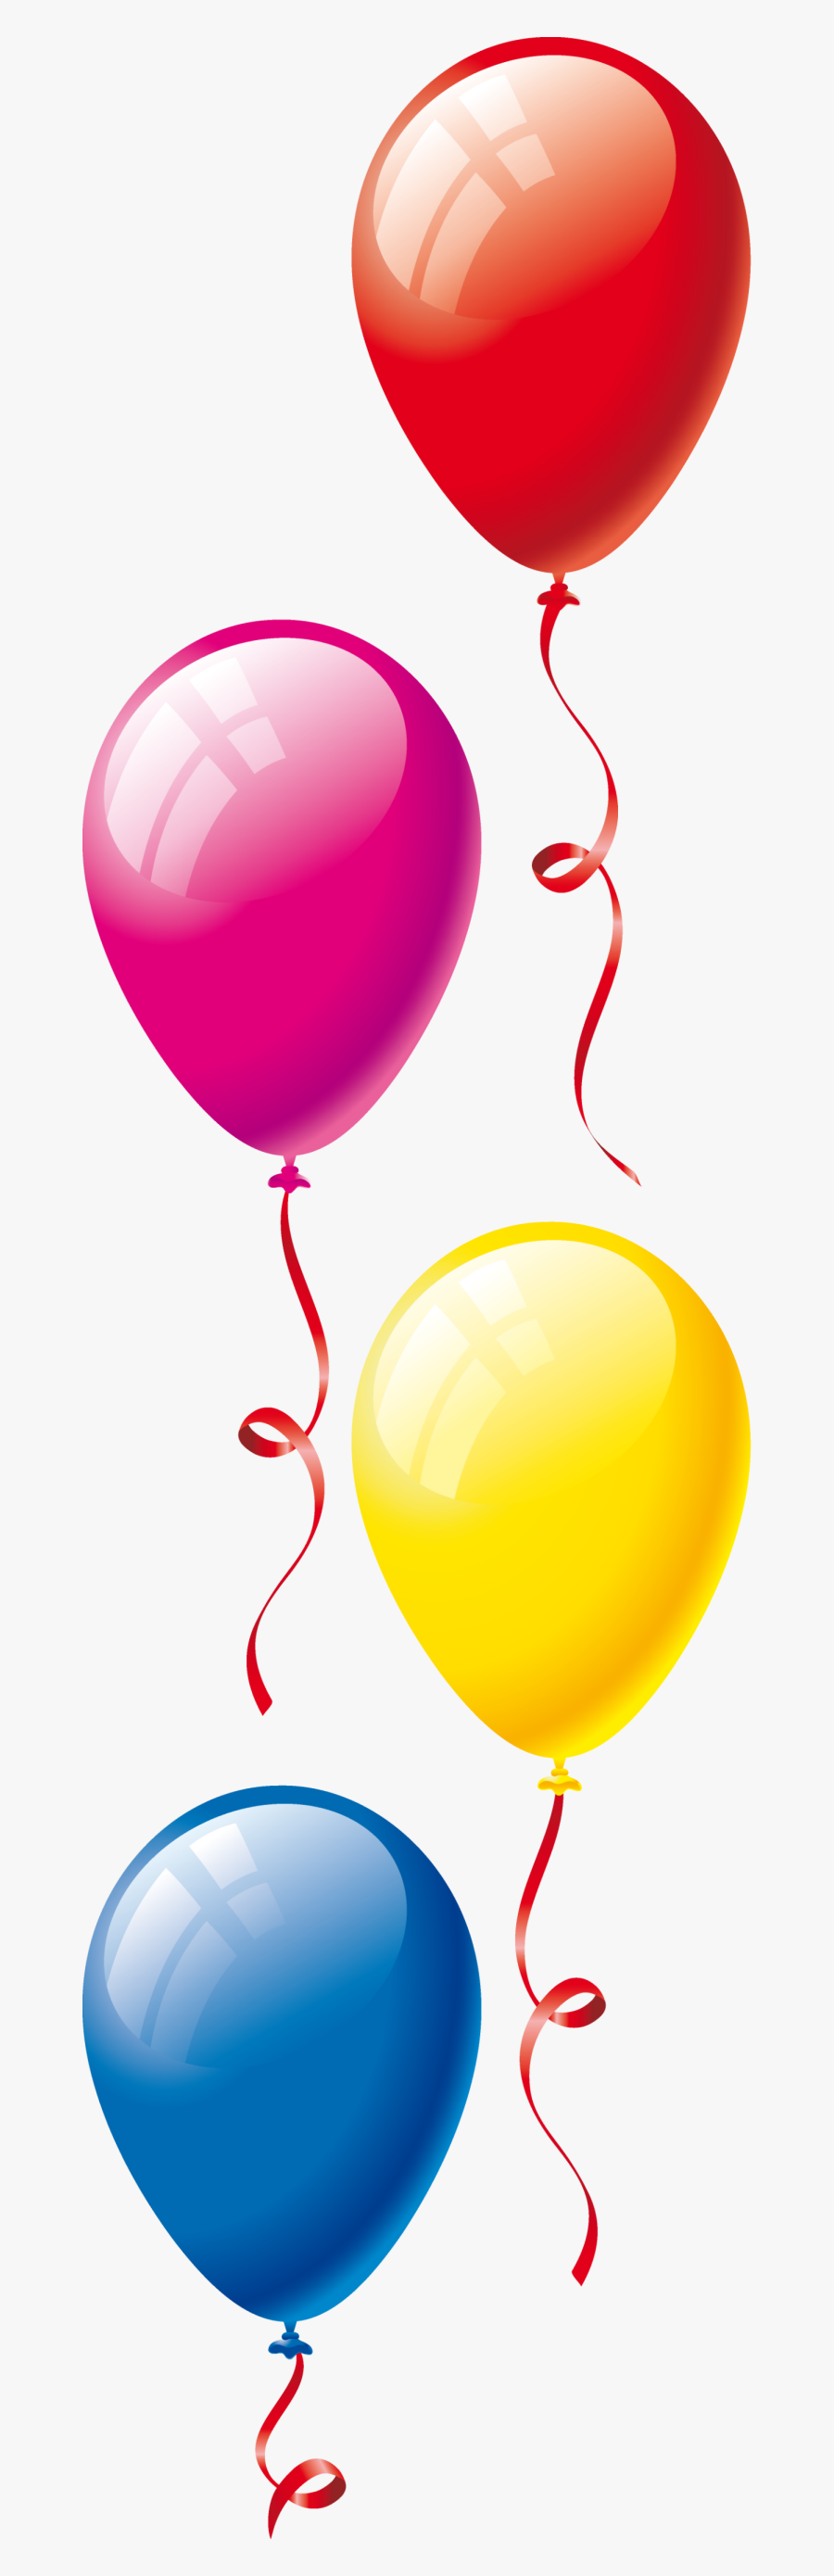 Party Balloon Toy Ballons Birthday Free Png Hq - Birthday Balloons Clipart, Transparent Clipart